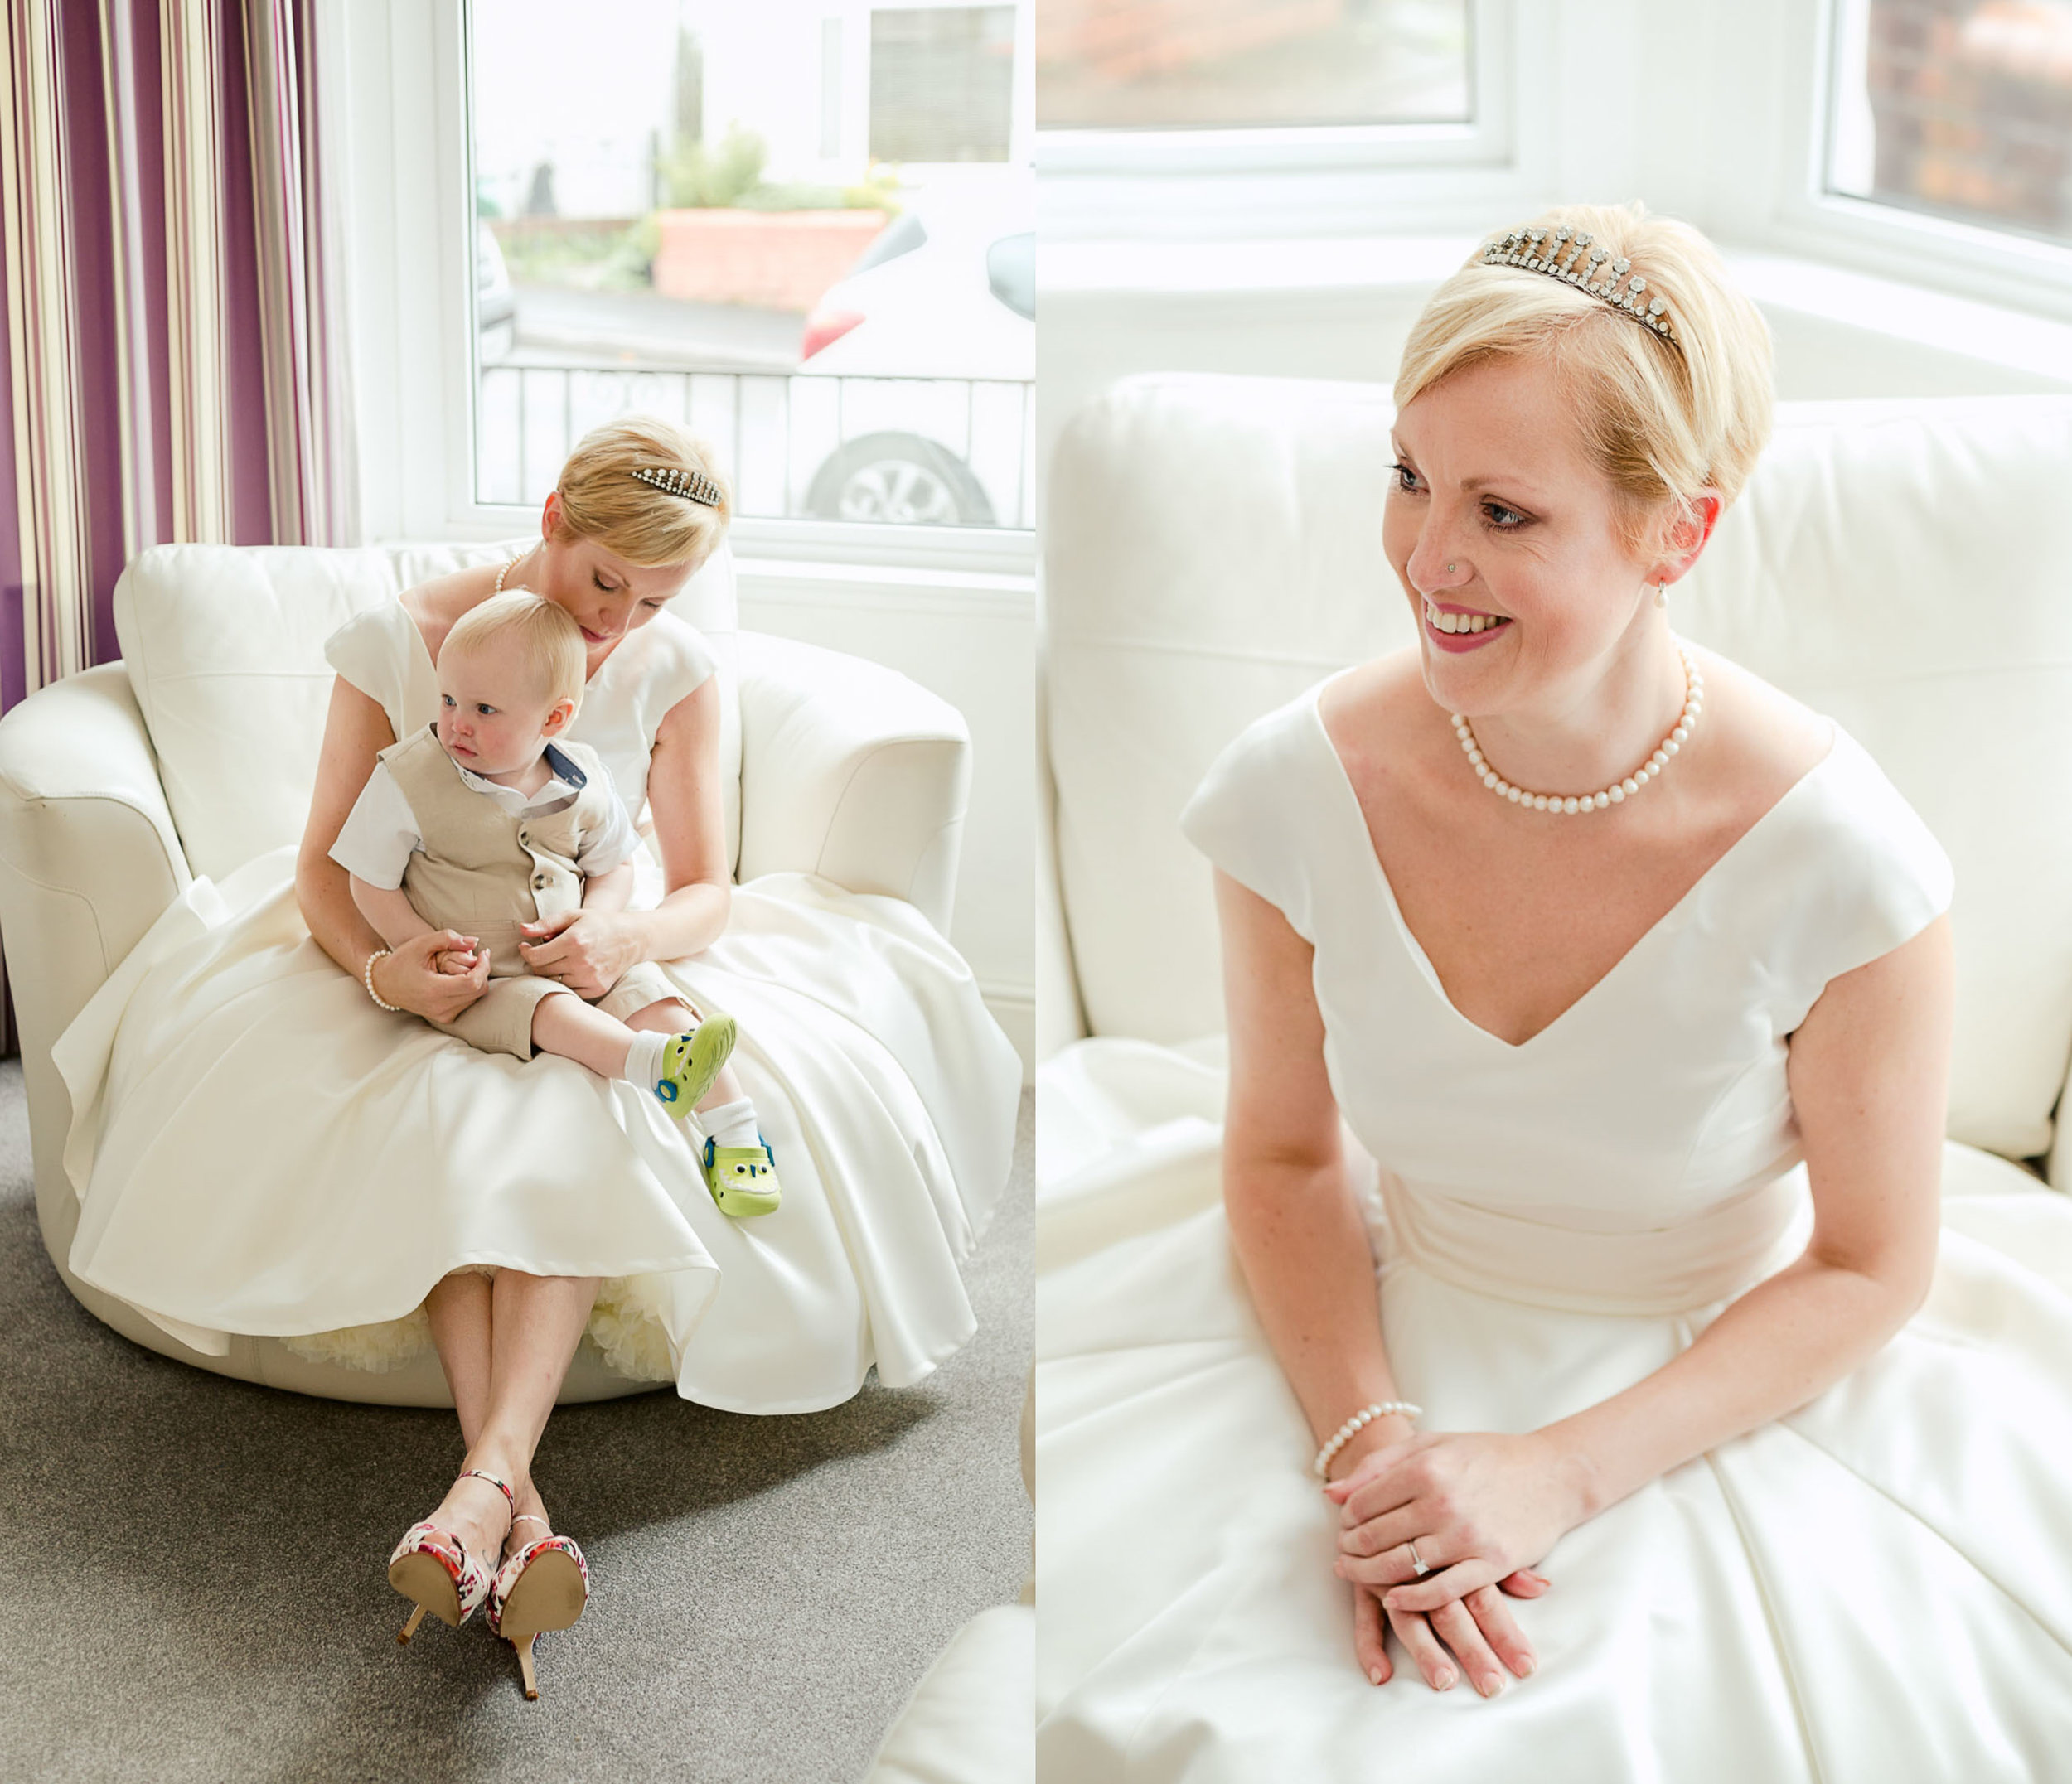 Cardiff City Hall wedding photos. Wedding photographer cardiff, south wales,